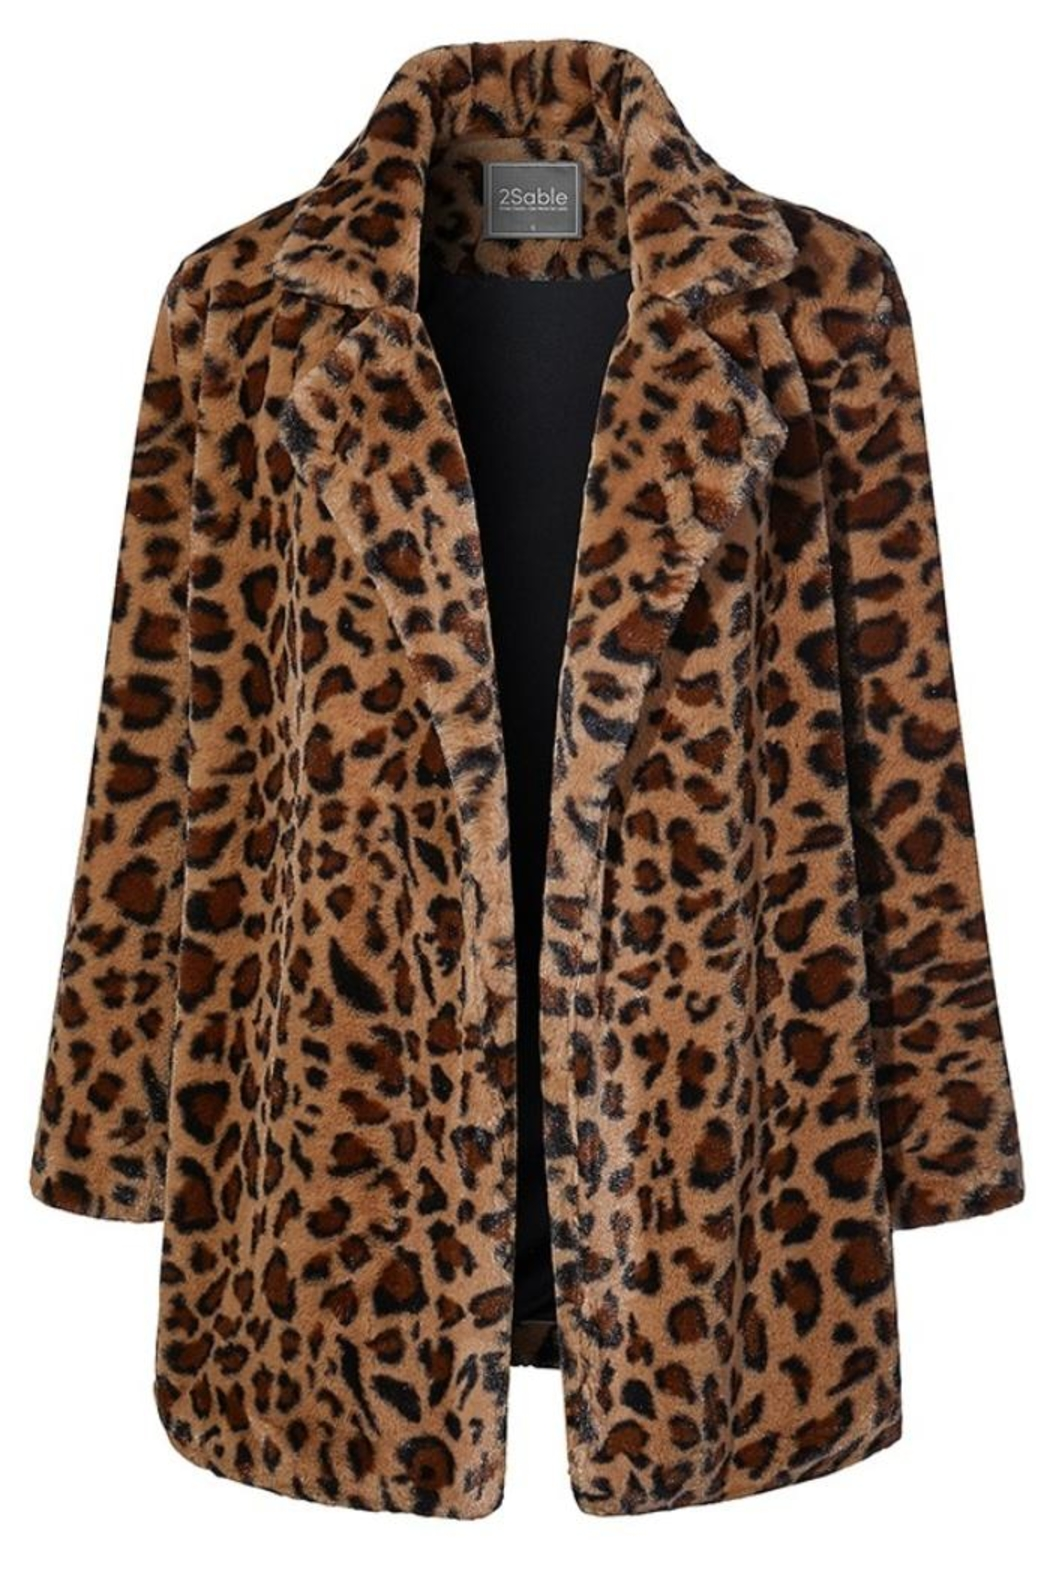 2Sable Leopard Jacket - Main Image